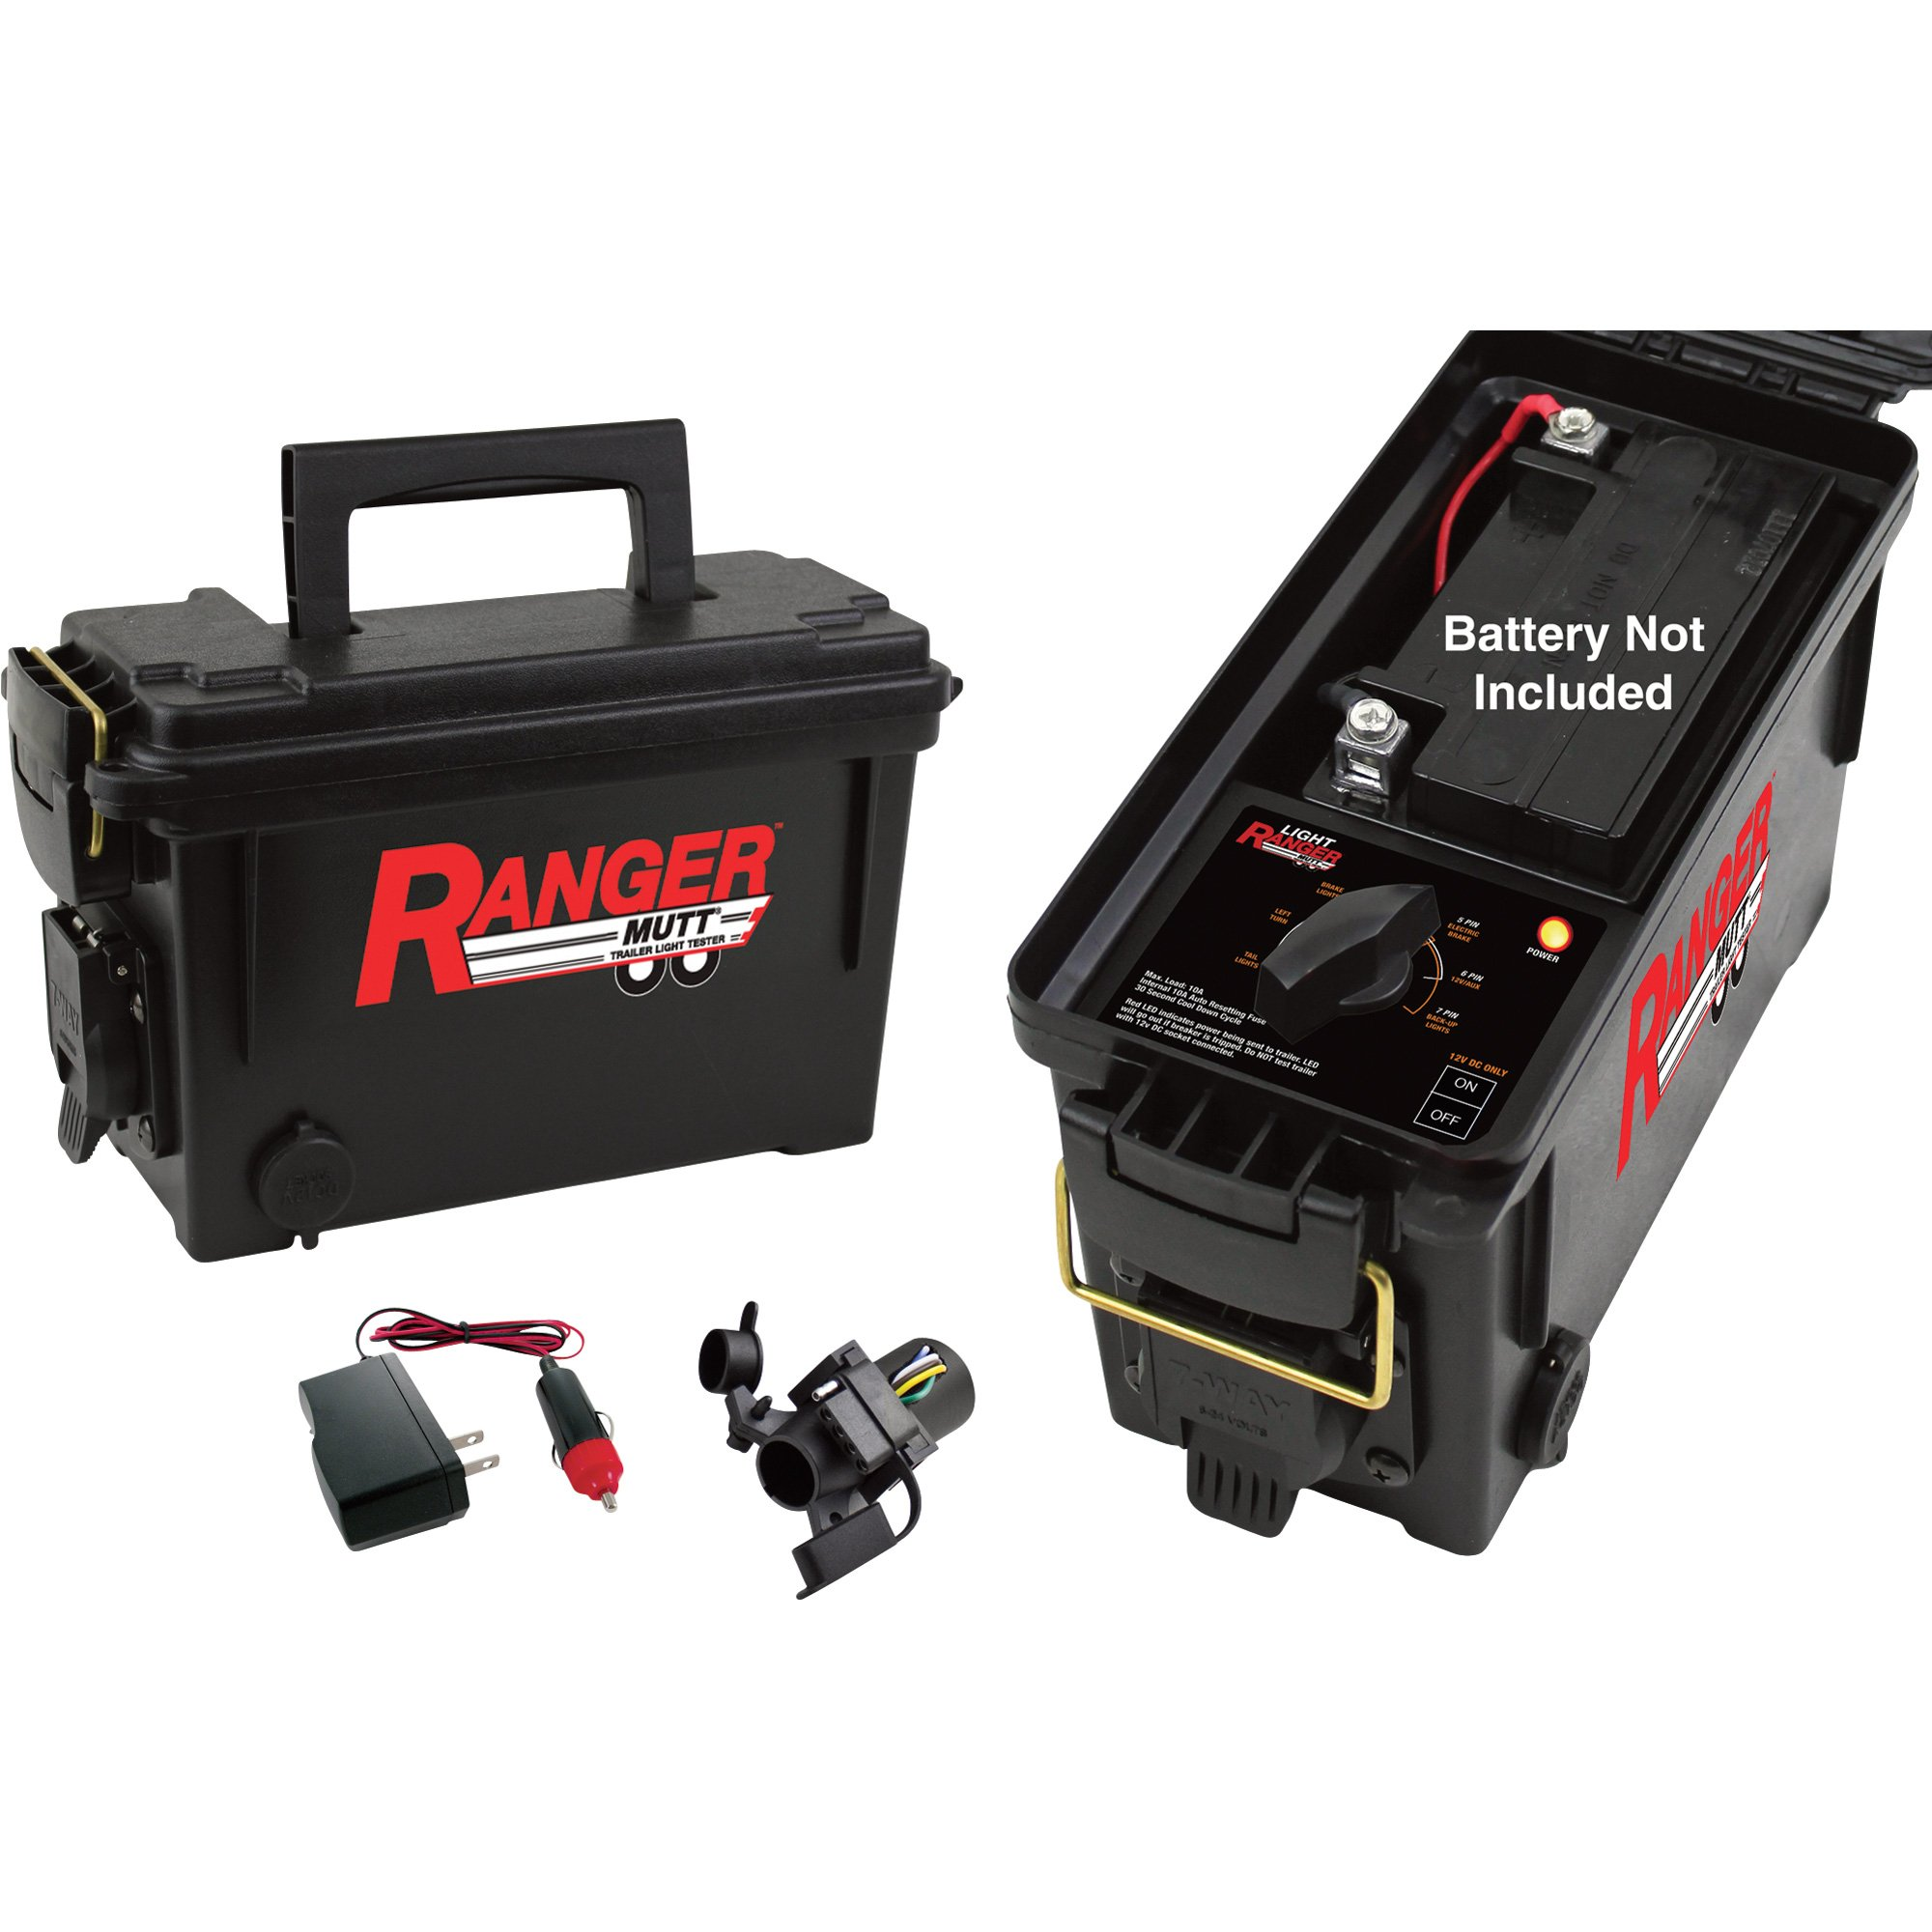 IPA Light Ranger MUTT RV and Utility-Type Trailer Tester - Tests 7-Spade, 6-Round and 4/5 Pin Harnesses, Model# 9101